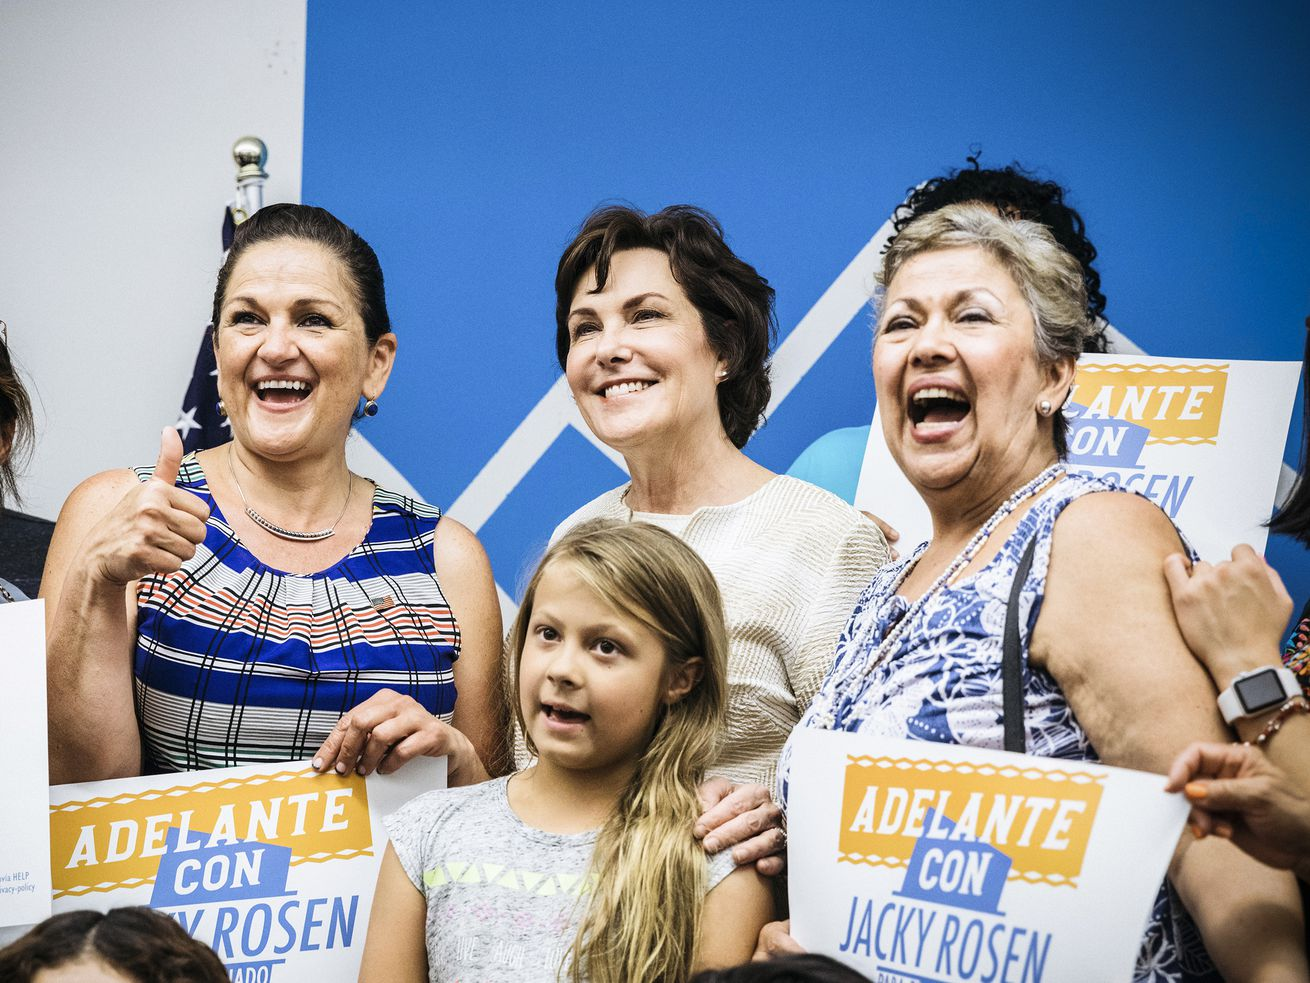 Rep. Jacky Rosen (D-NV, second from left), the Democratic candidate for Senate in Nevada, poses with volunteers at a campaign event in East Las Vegas on September 15, 2018.